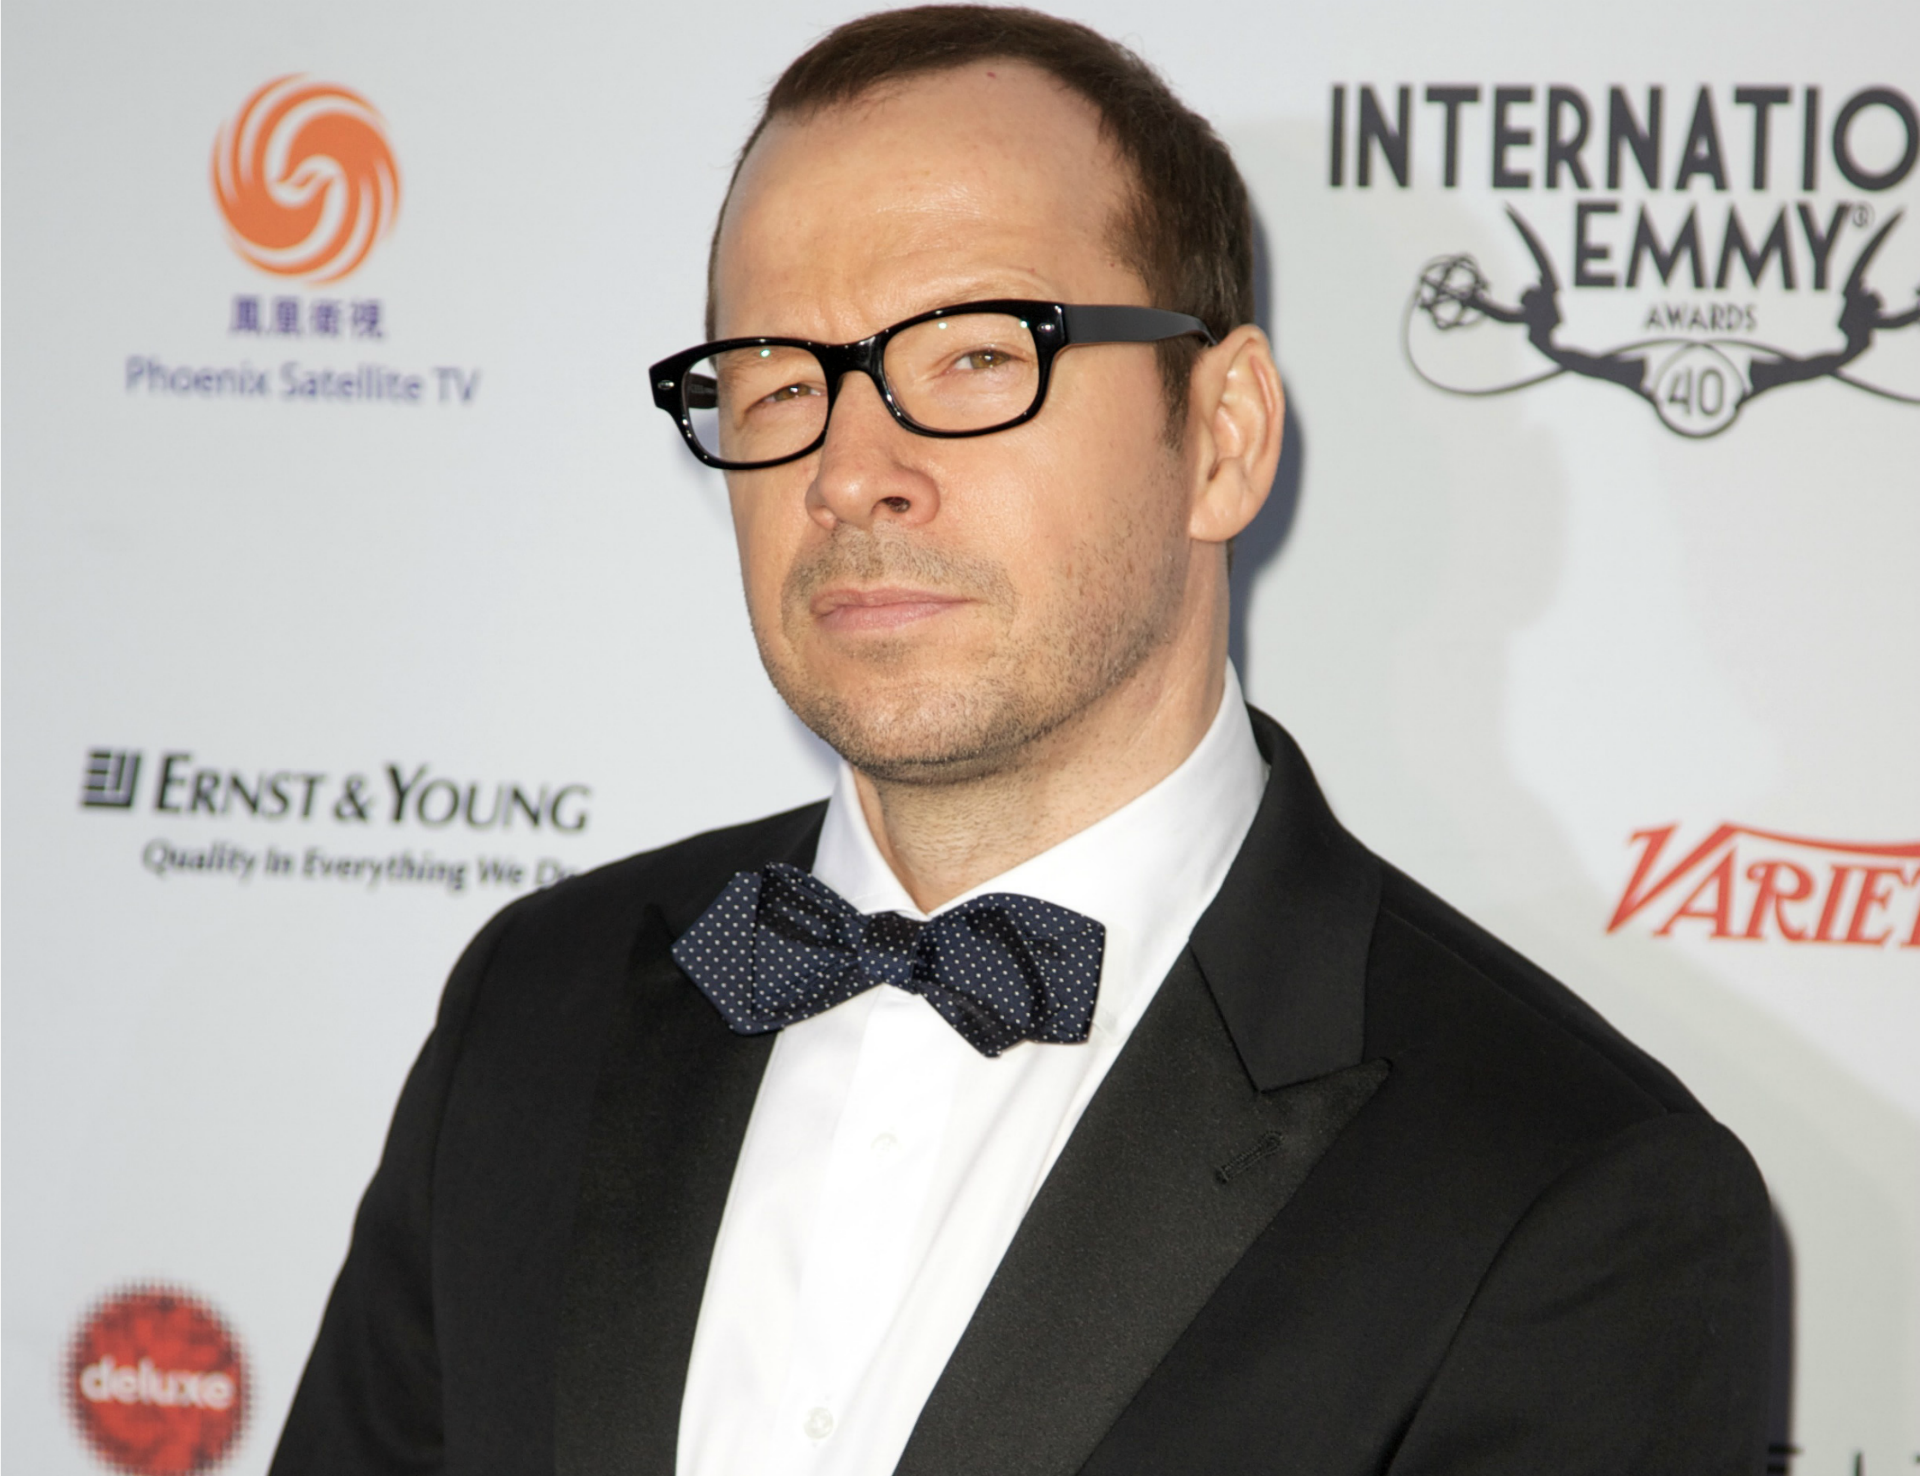 Donnie Wahlberg earned a  million dollar salary, leaving the net worth at 20 million in 2017